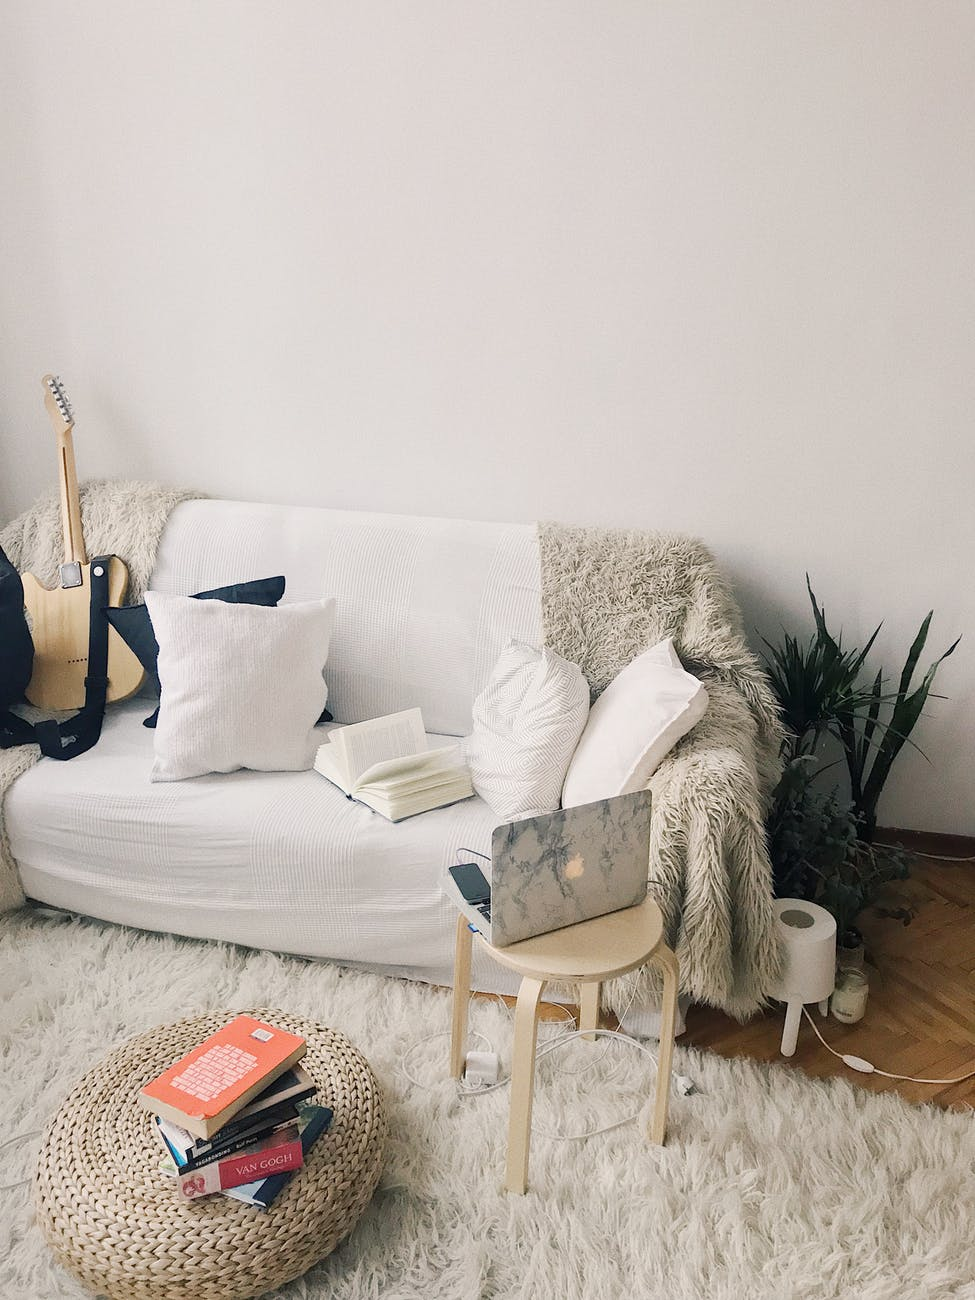 Embracing hygge